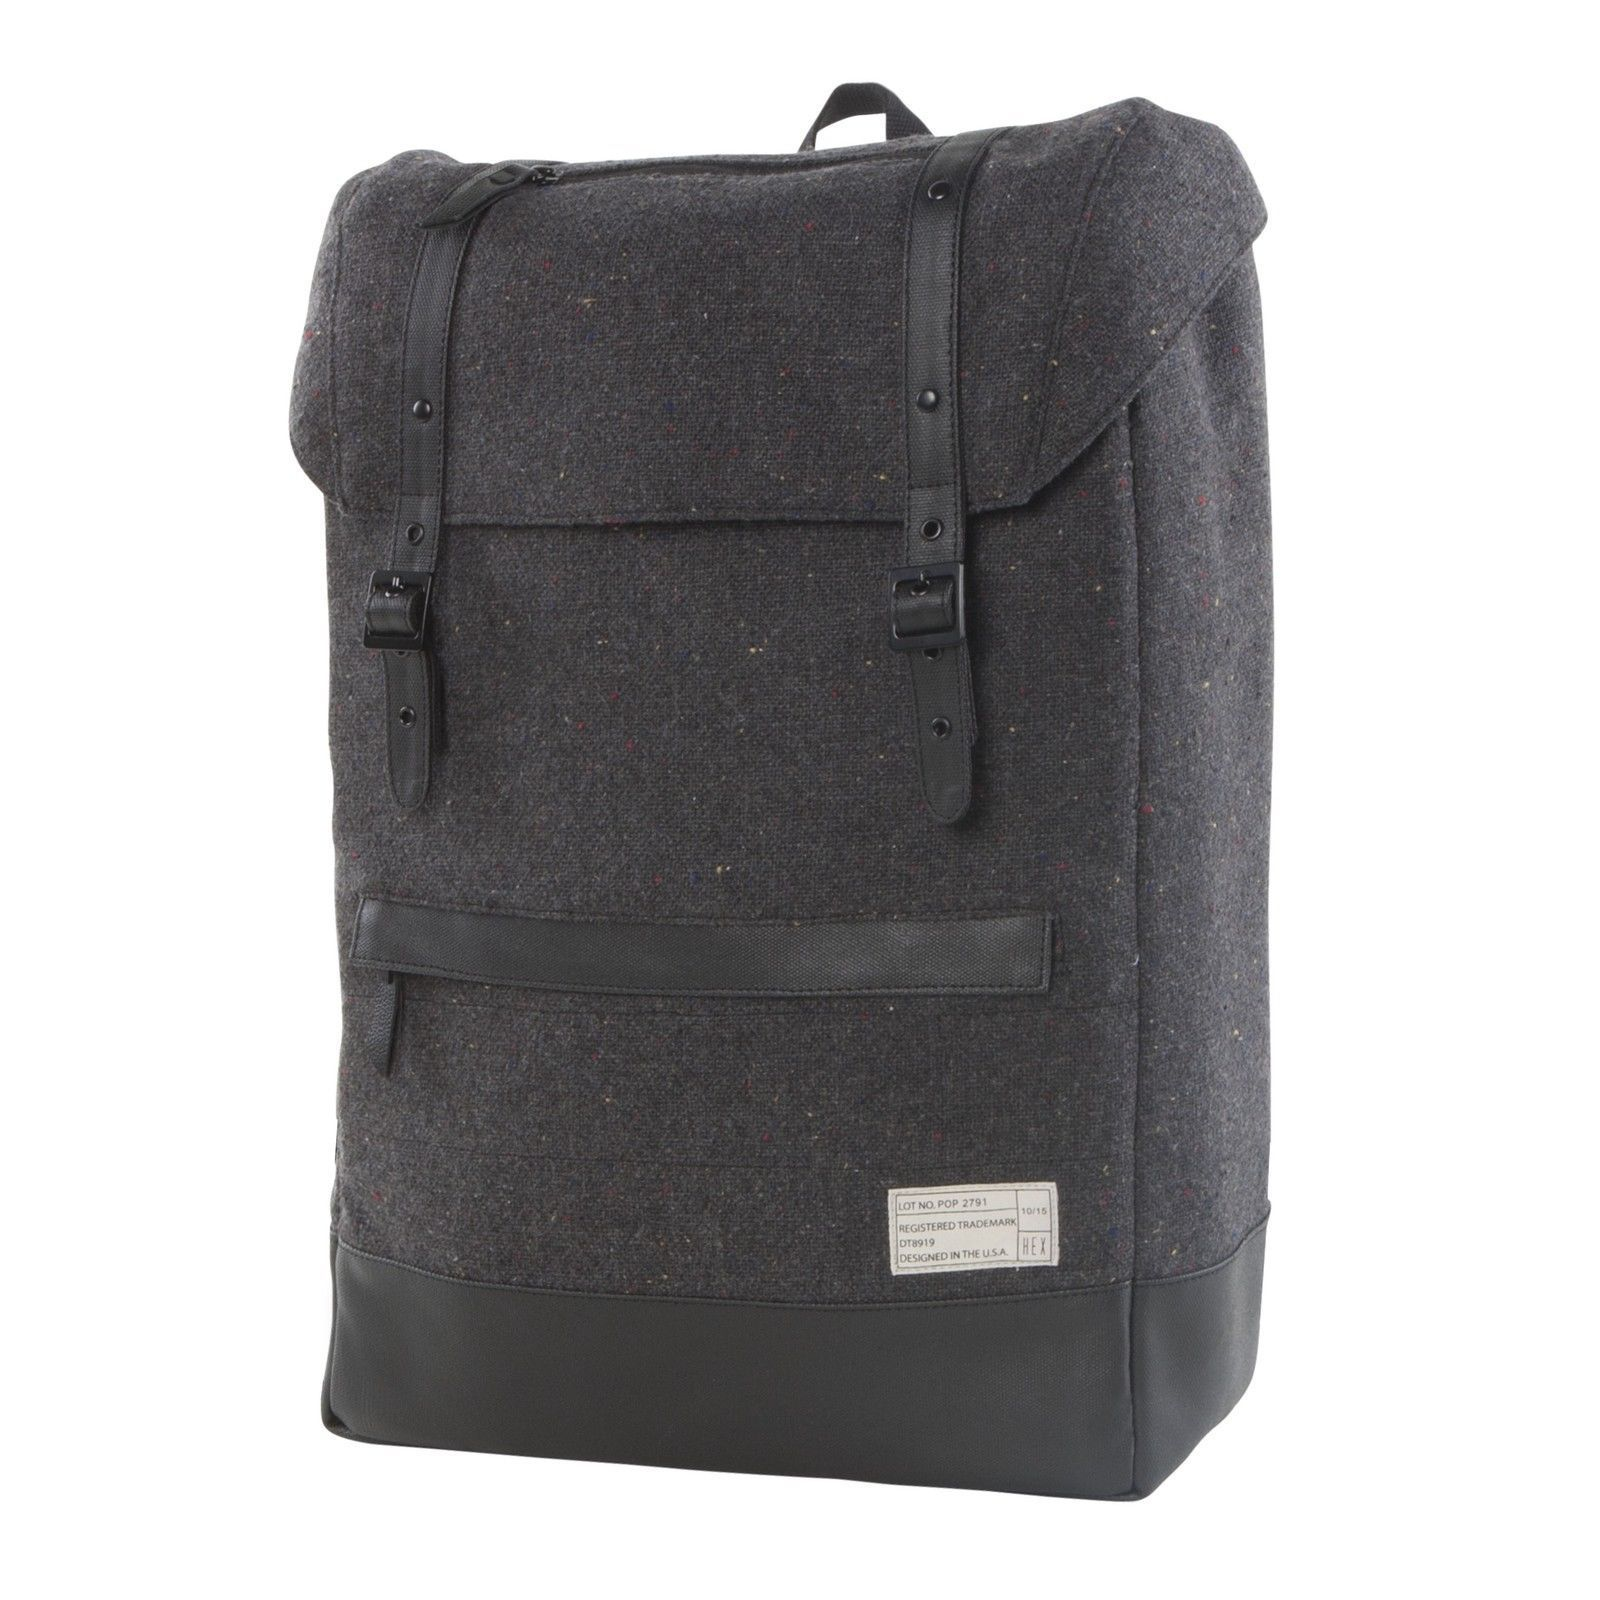 Top Rated Laptop Backpacks DVJUbkDA